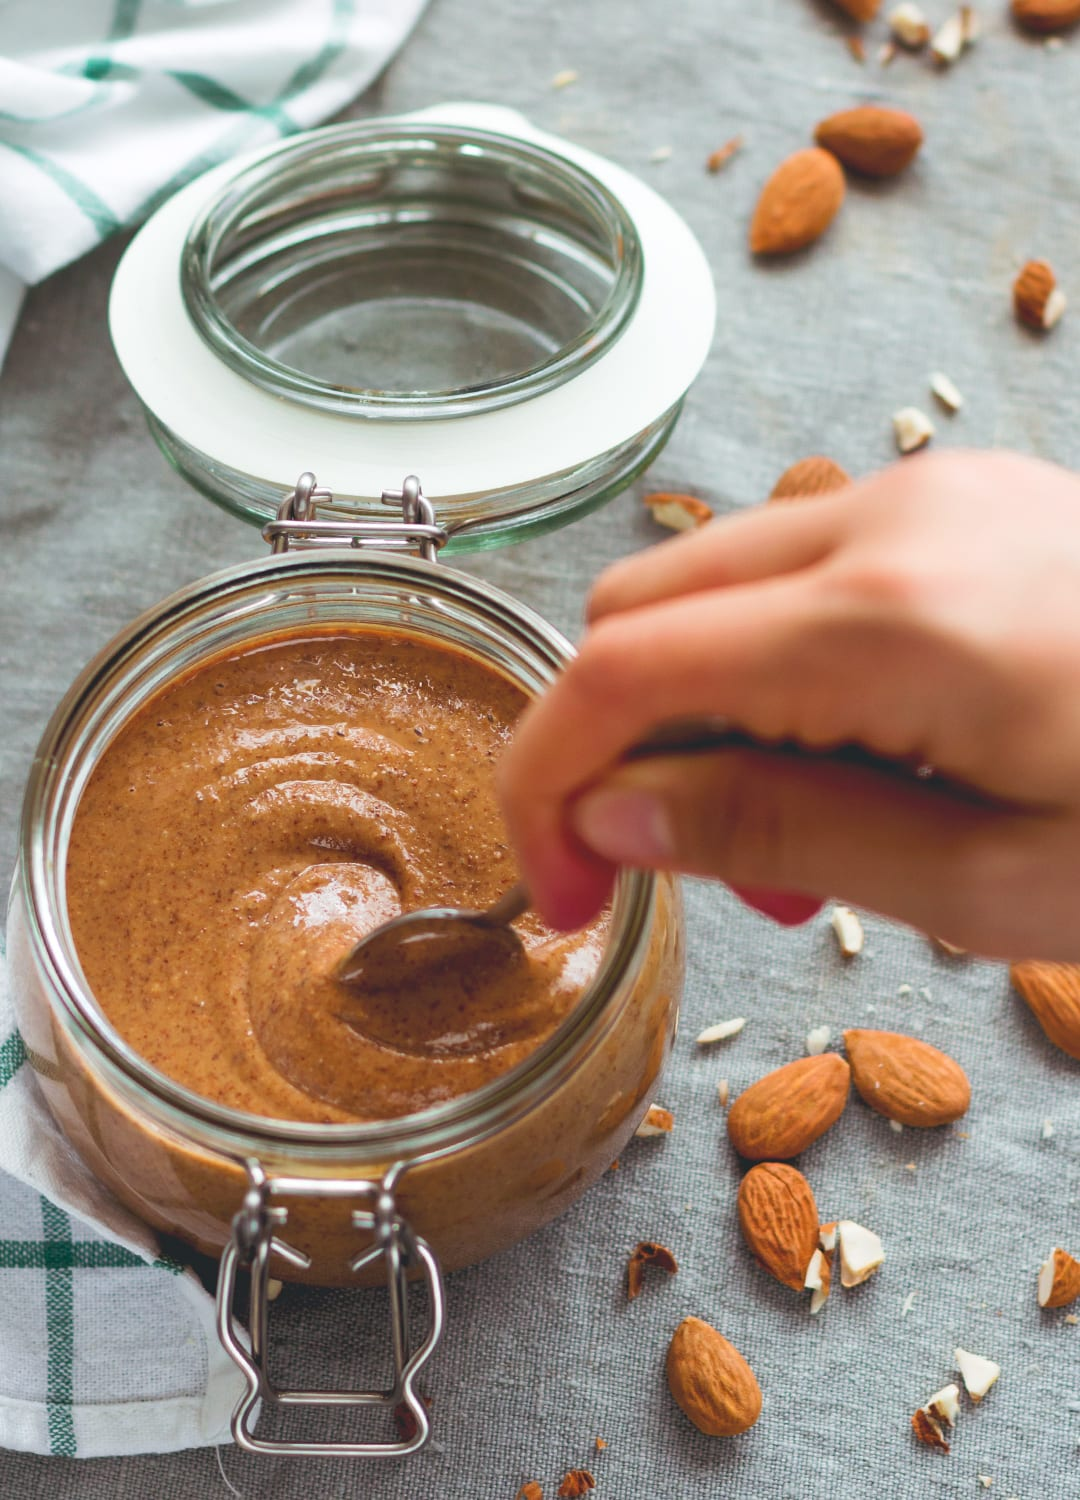 How to Make Almond Butter - homemade almond butter is much tastier than store-bought and extremely easy to make! You'll love making your own. Enjoy plain or try one of my recommended flavors! | thehealthfulideas.com